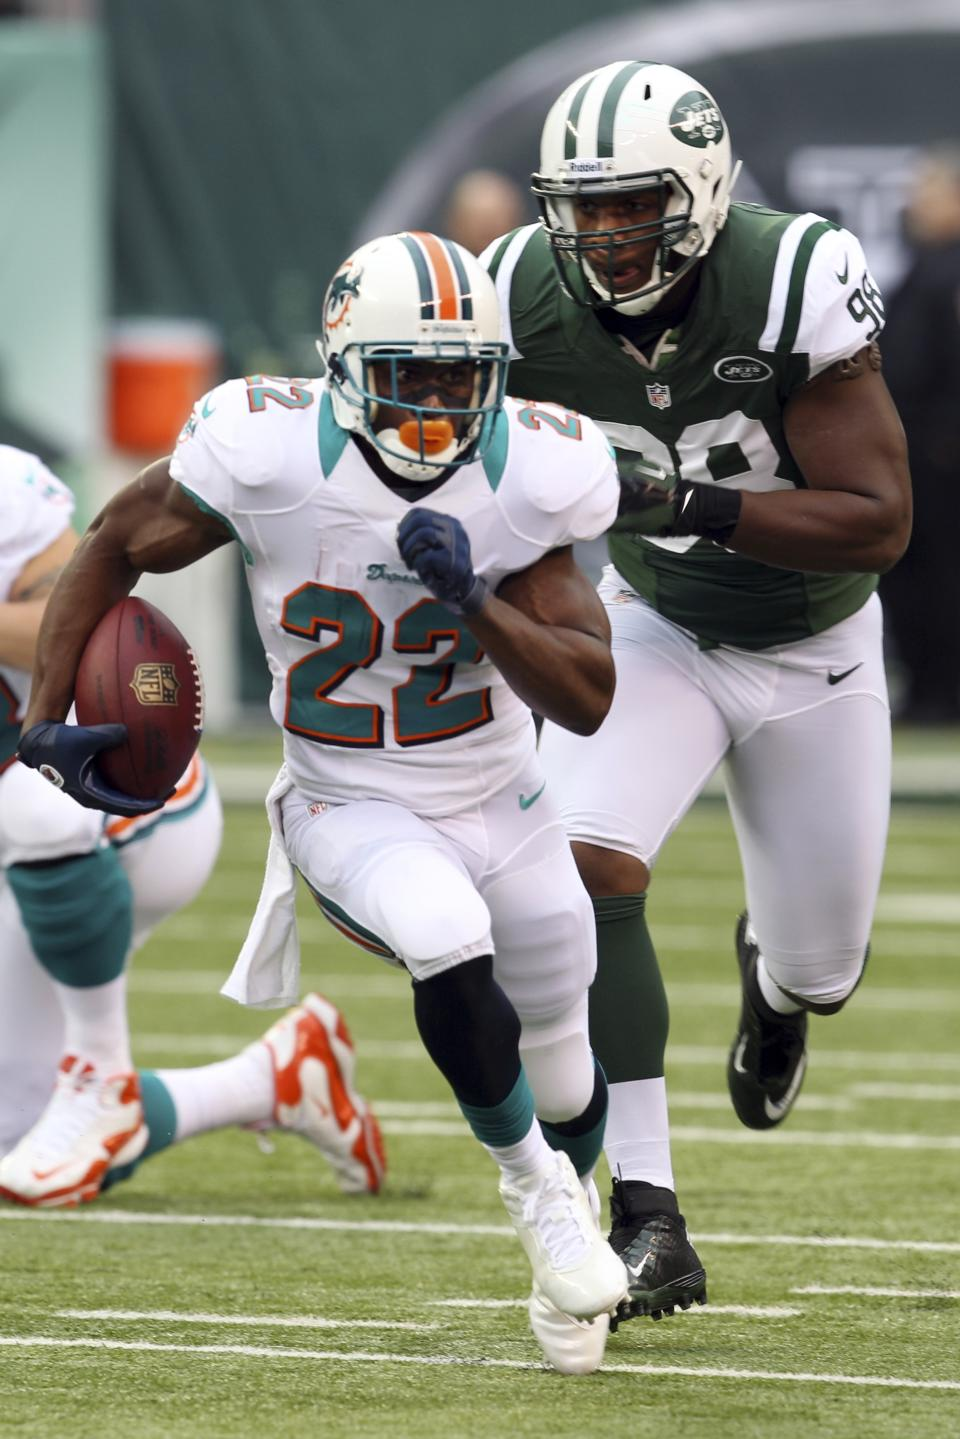 Miami Dolphins running back Reggie Bush (22) runs away from New York Jets defensive end Quinton Coples (98) during the first half of an NFL football game Sunday, Oct. 28, 2012 in East Rutherford, N.J. (AP Photo/Seth Wenig)